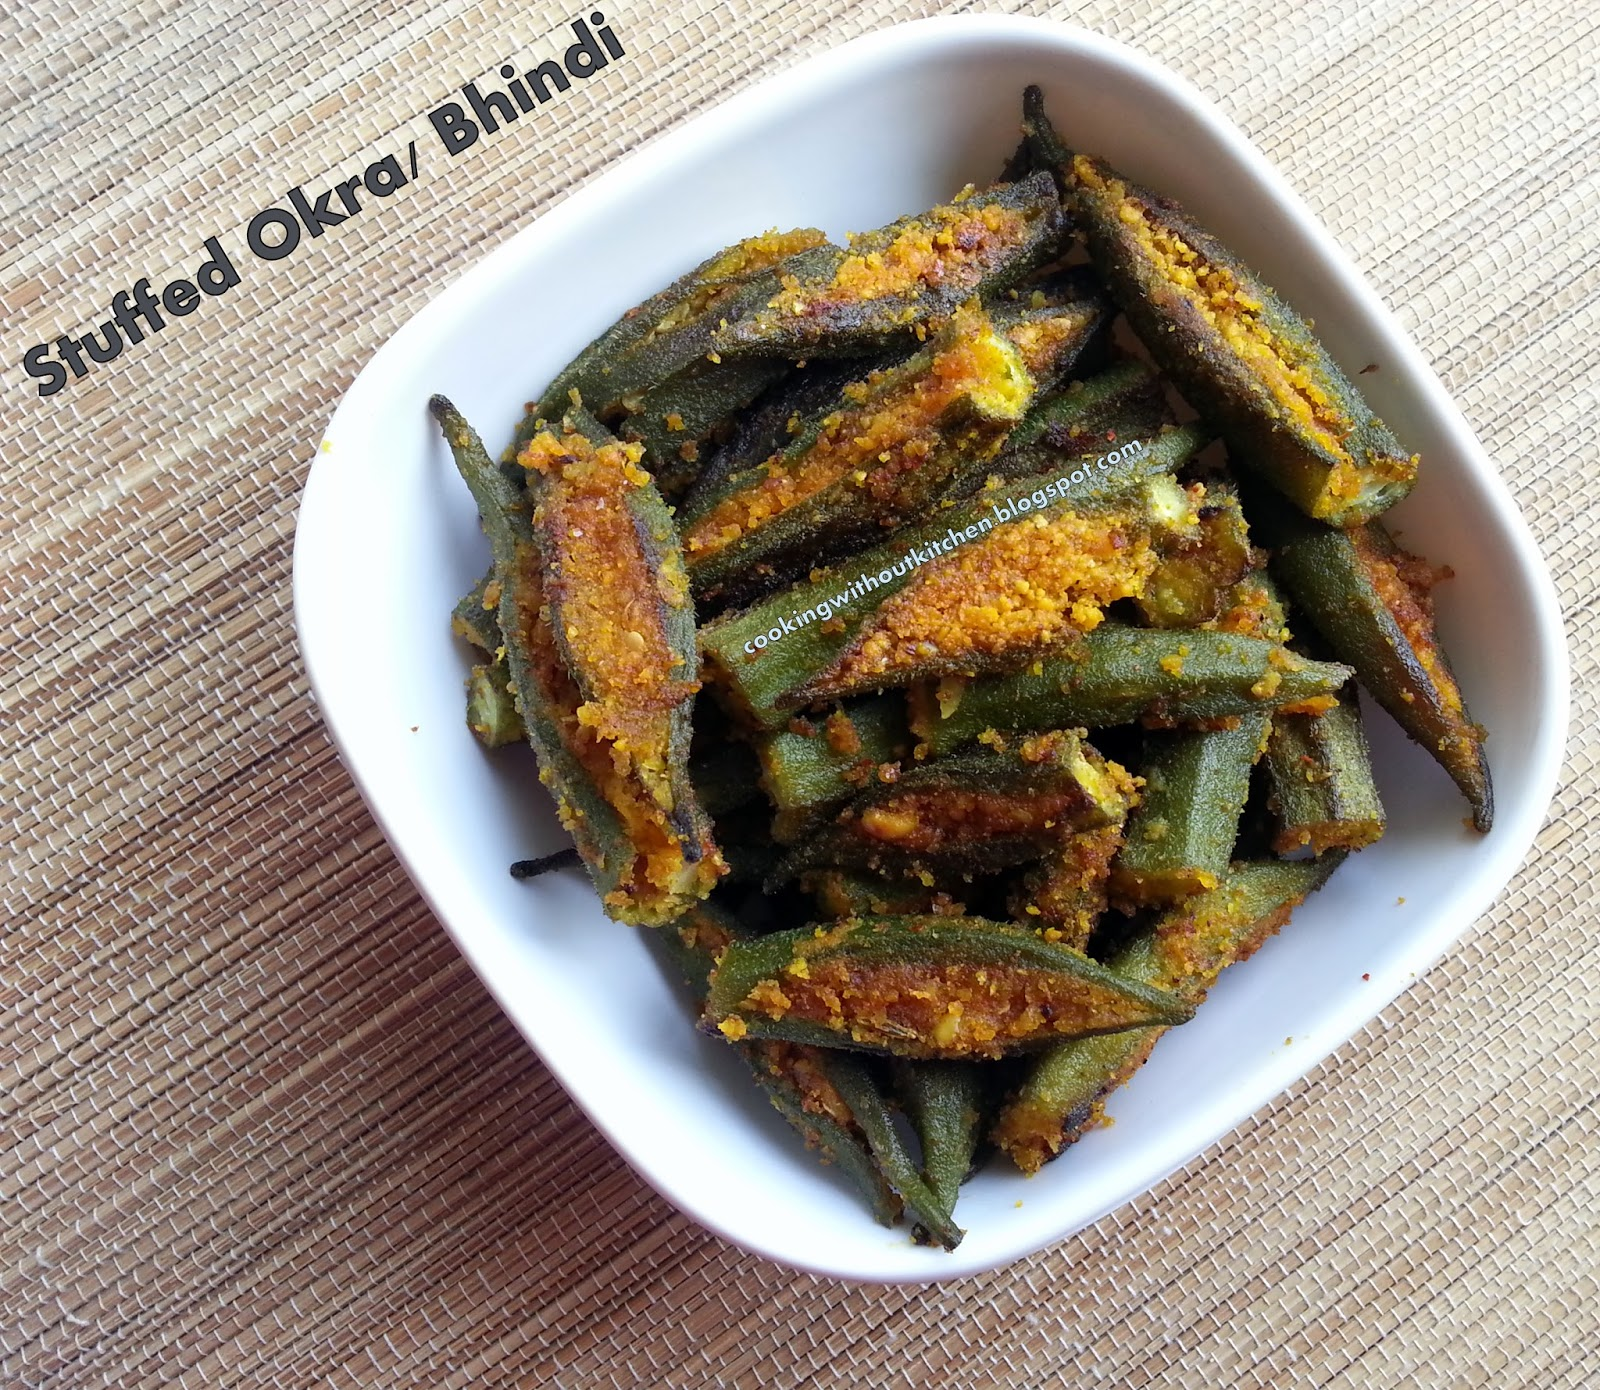 Cooking without kitchen okra with instant stir fry masala bharli cooking without kitchen okra with instant stir fry masala bharli bhindi forumfinder Image collections